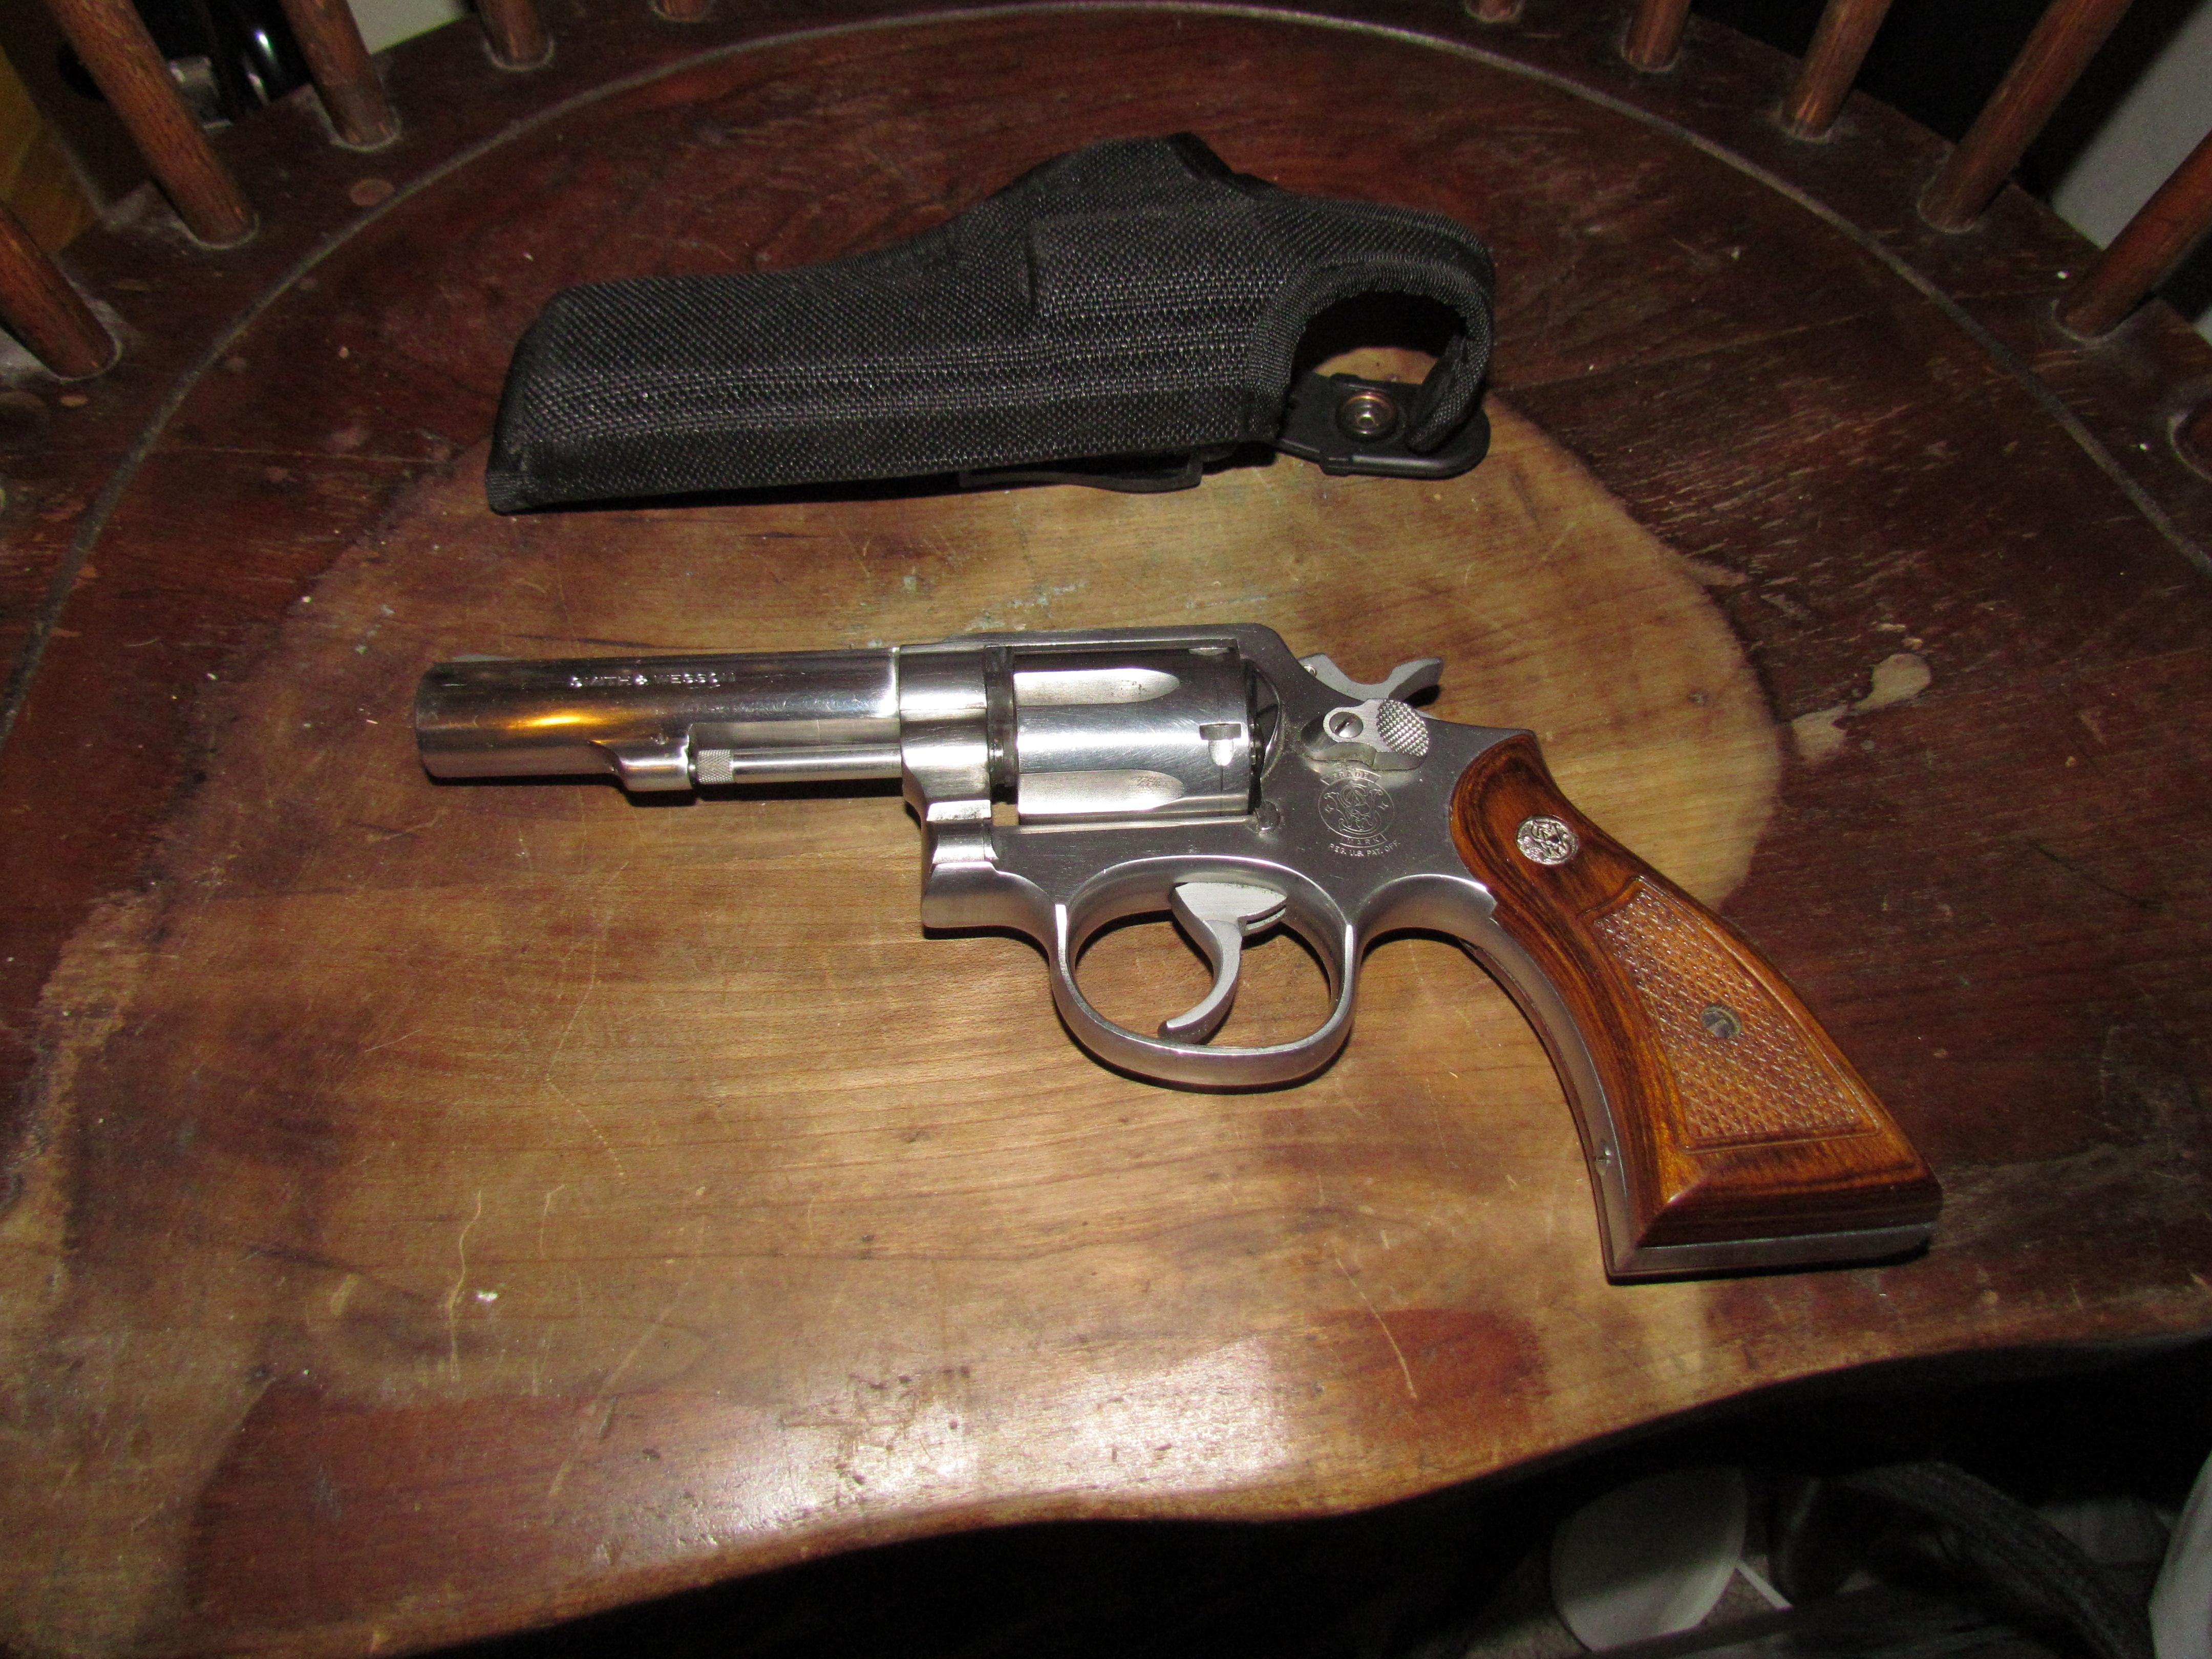 S&W 64-3 Police Gun w/S&W Dymondwood grips and Bianche holster  Guns > Pistols > Smith & Wesson Revolvers > Full Frame Revolver